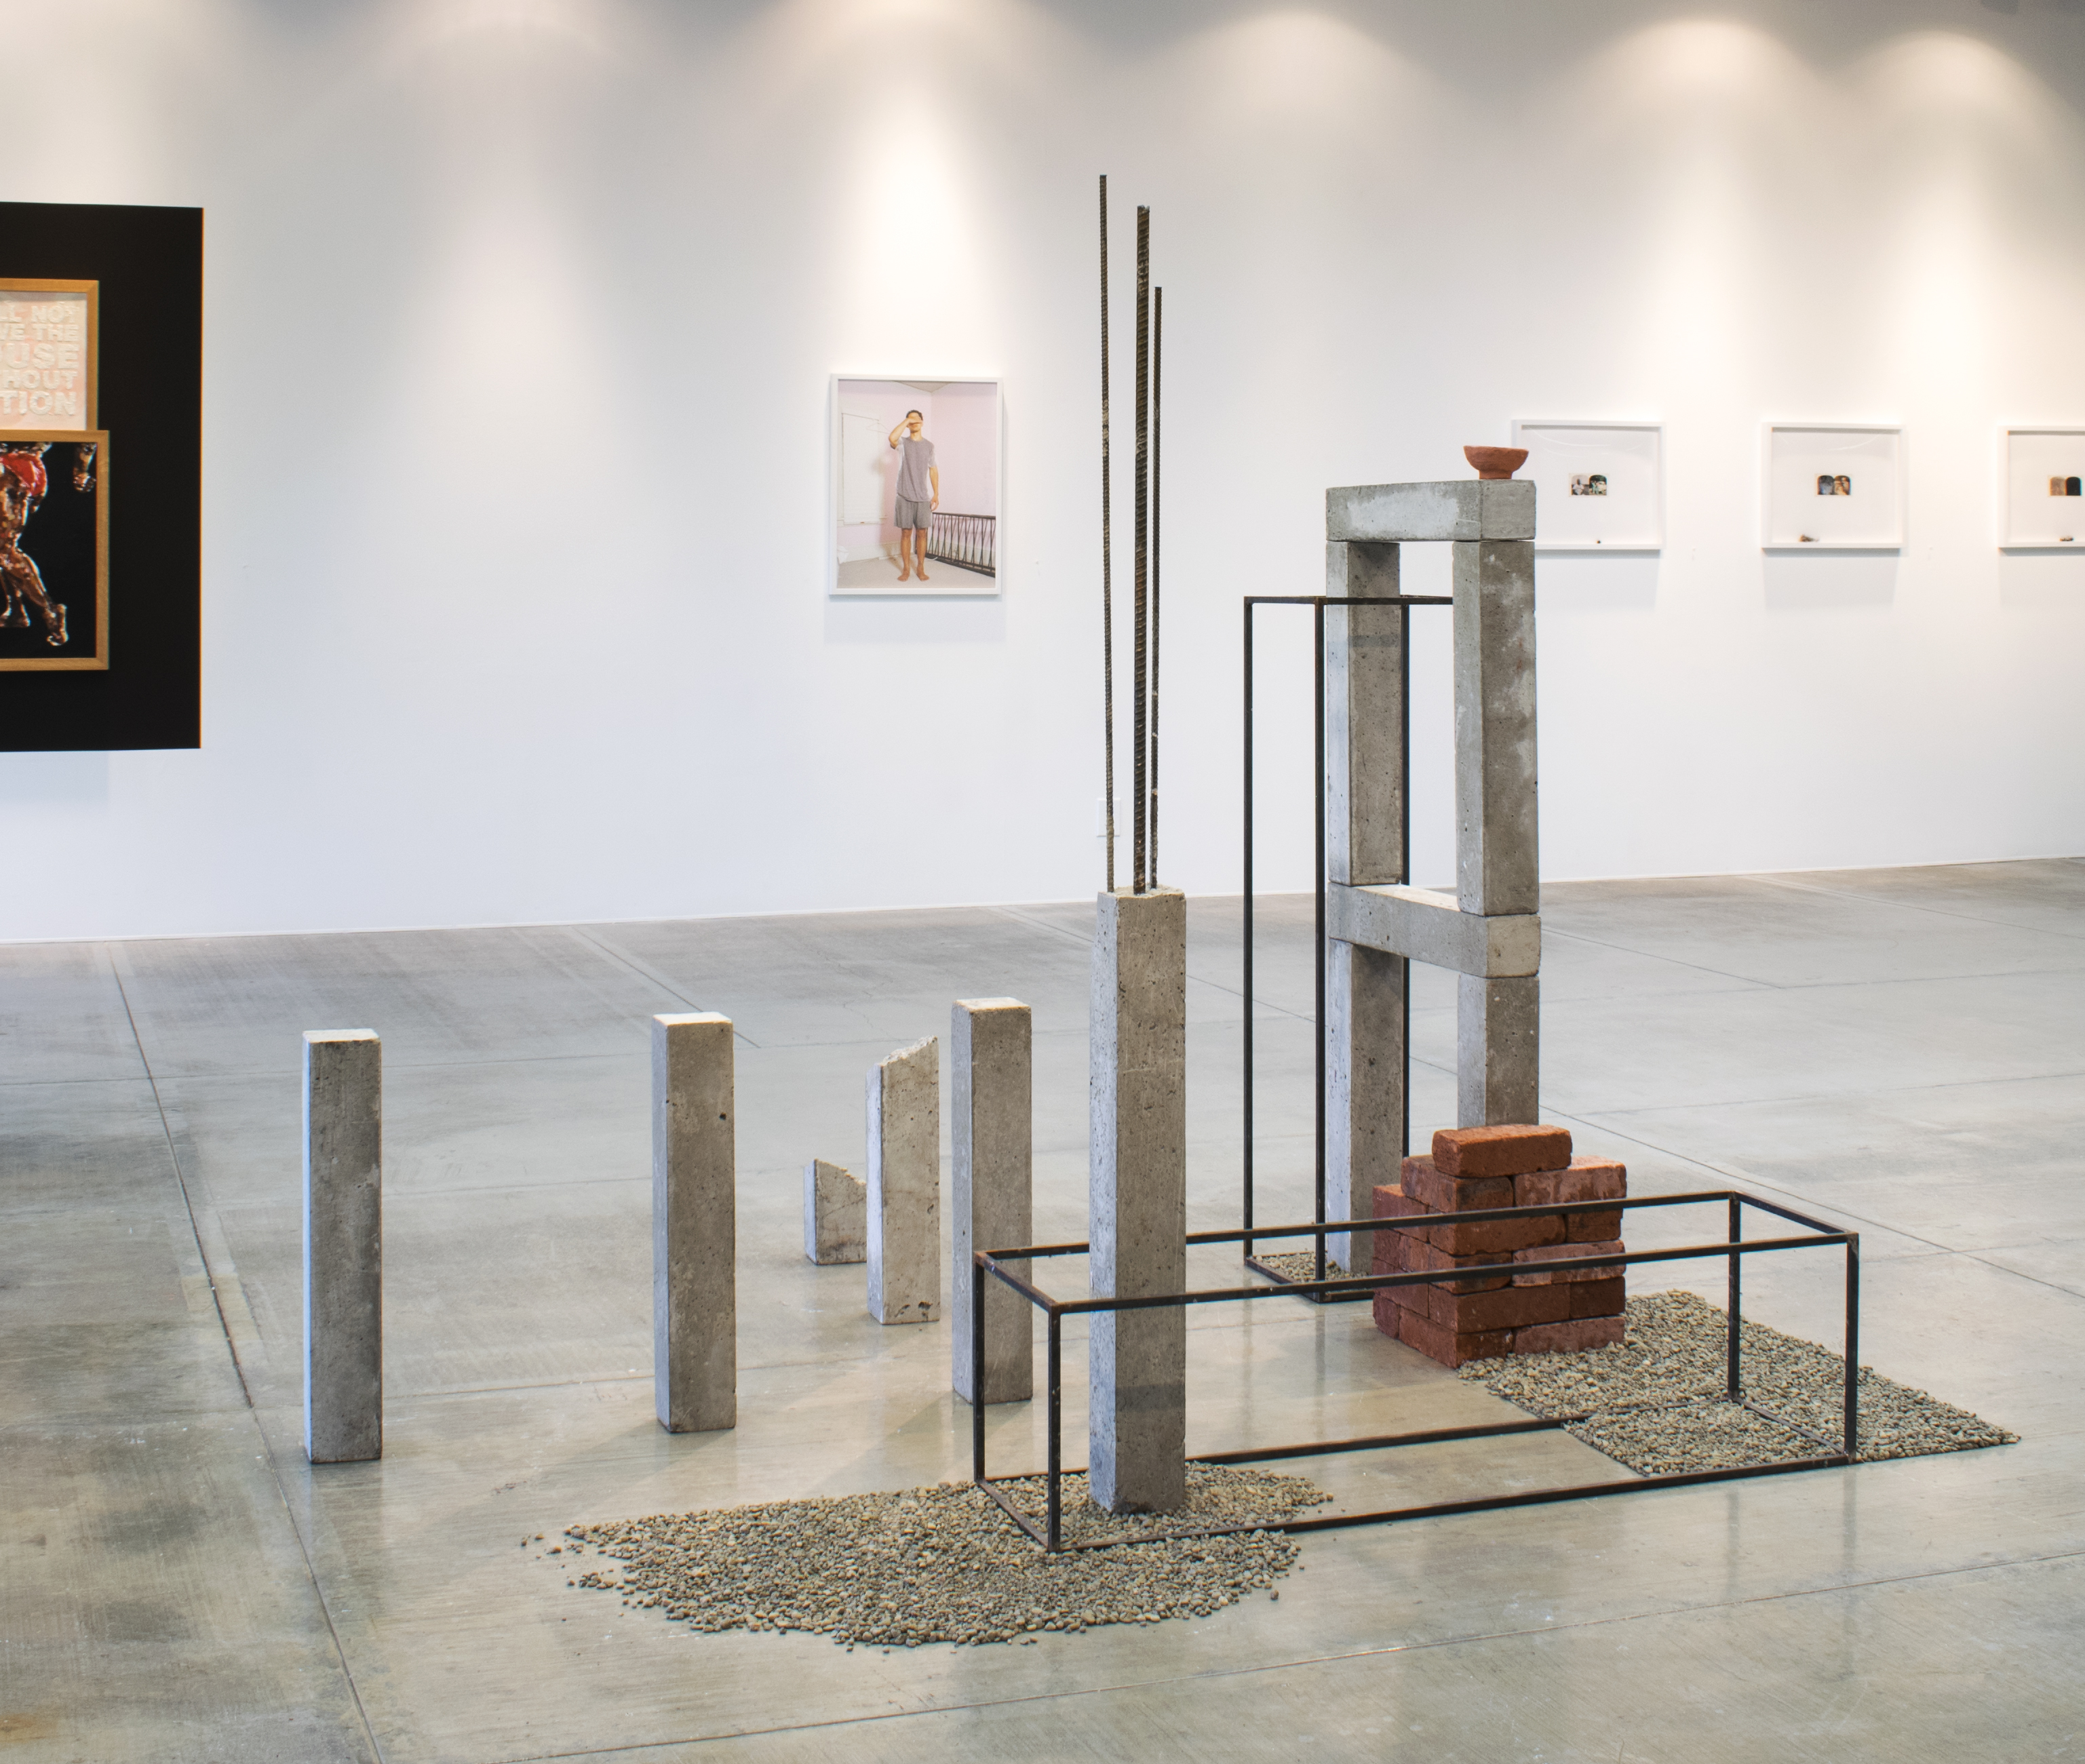 Hiro Toyo/Ricardo Nagaoka, Arranged Space I, 2018, cement, brick, gravel, steel, clay